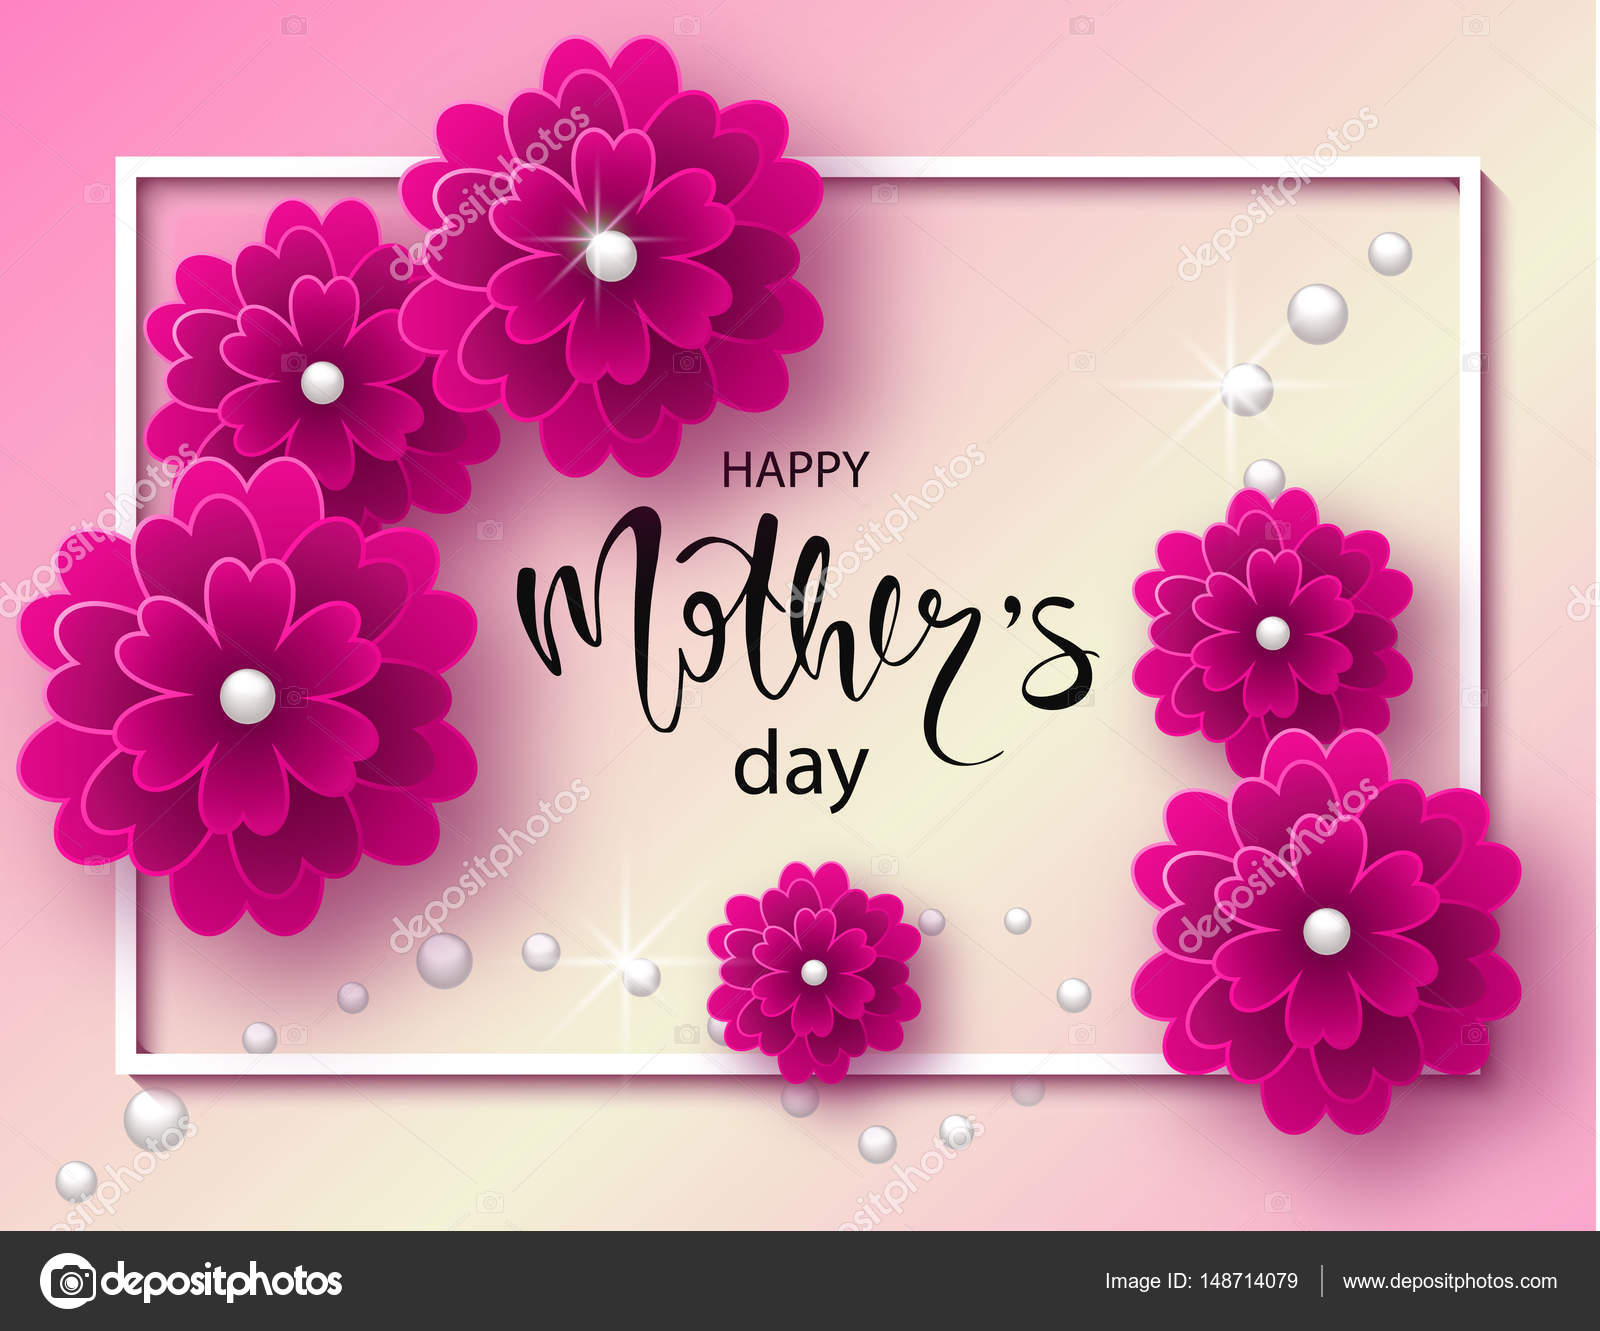 Mothersday Mother Day Background - HD Wallpaper